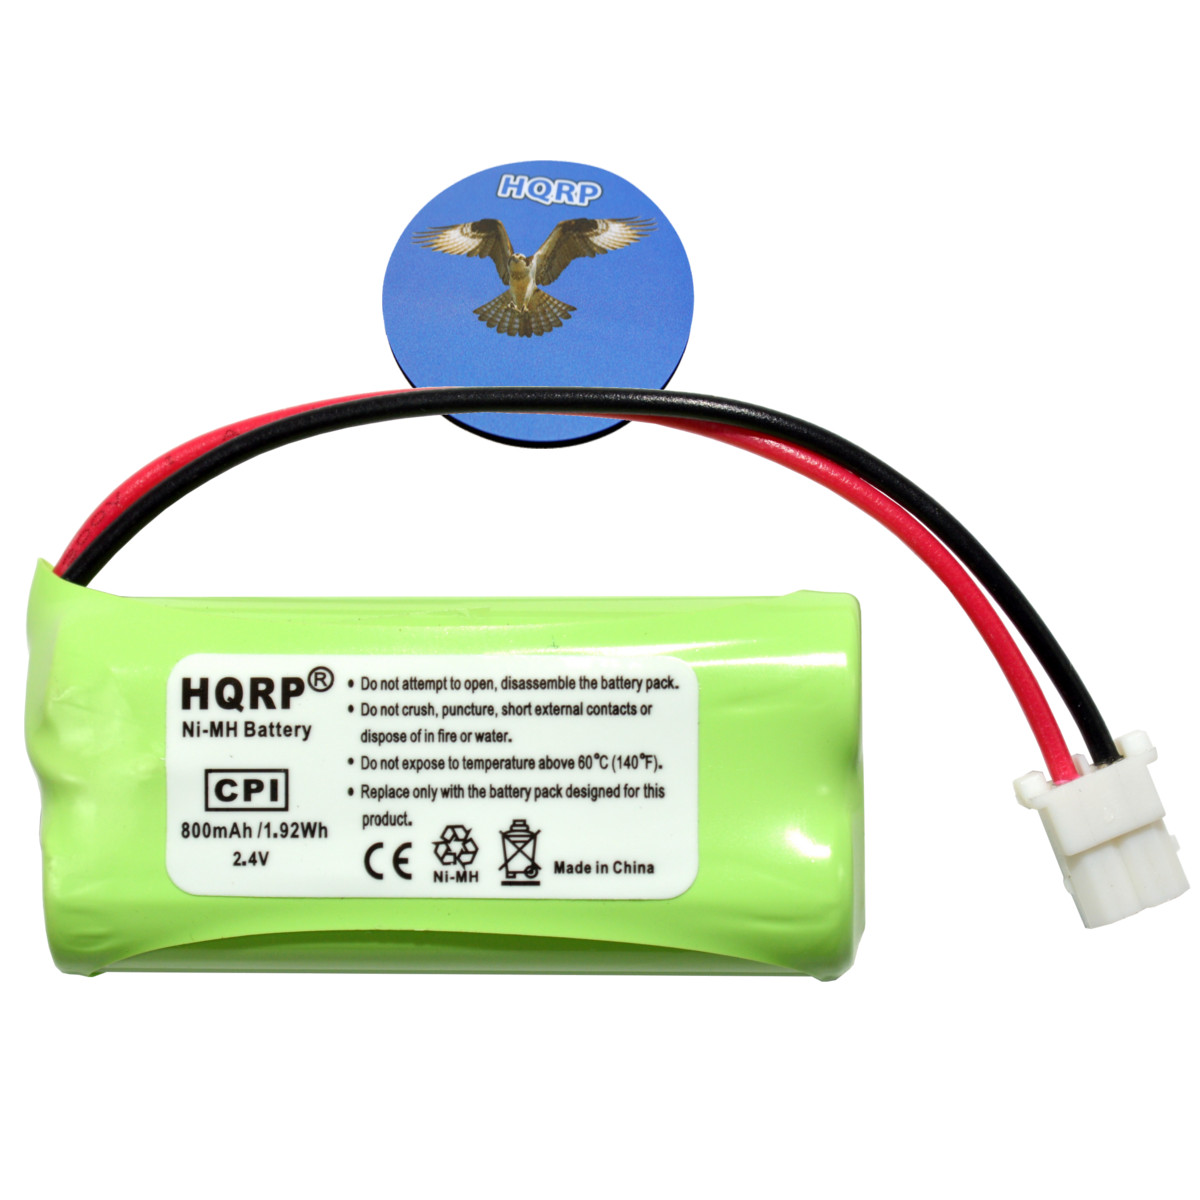 HQRP Phone Battery for AT&T LUCENT CL81201 CL81211 CL81301 CL82101 CL82201 Cordless Telephone + HQRP Coaster